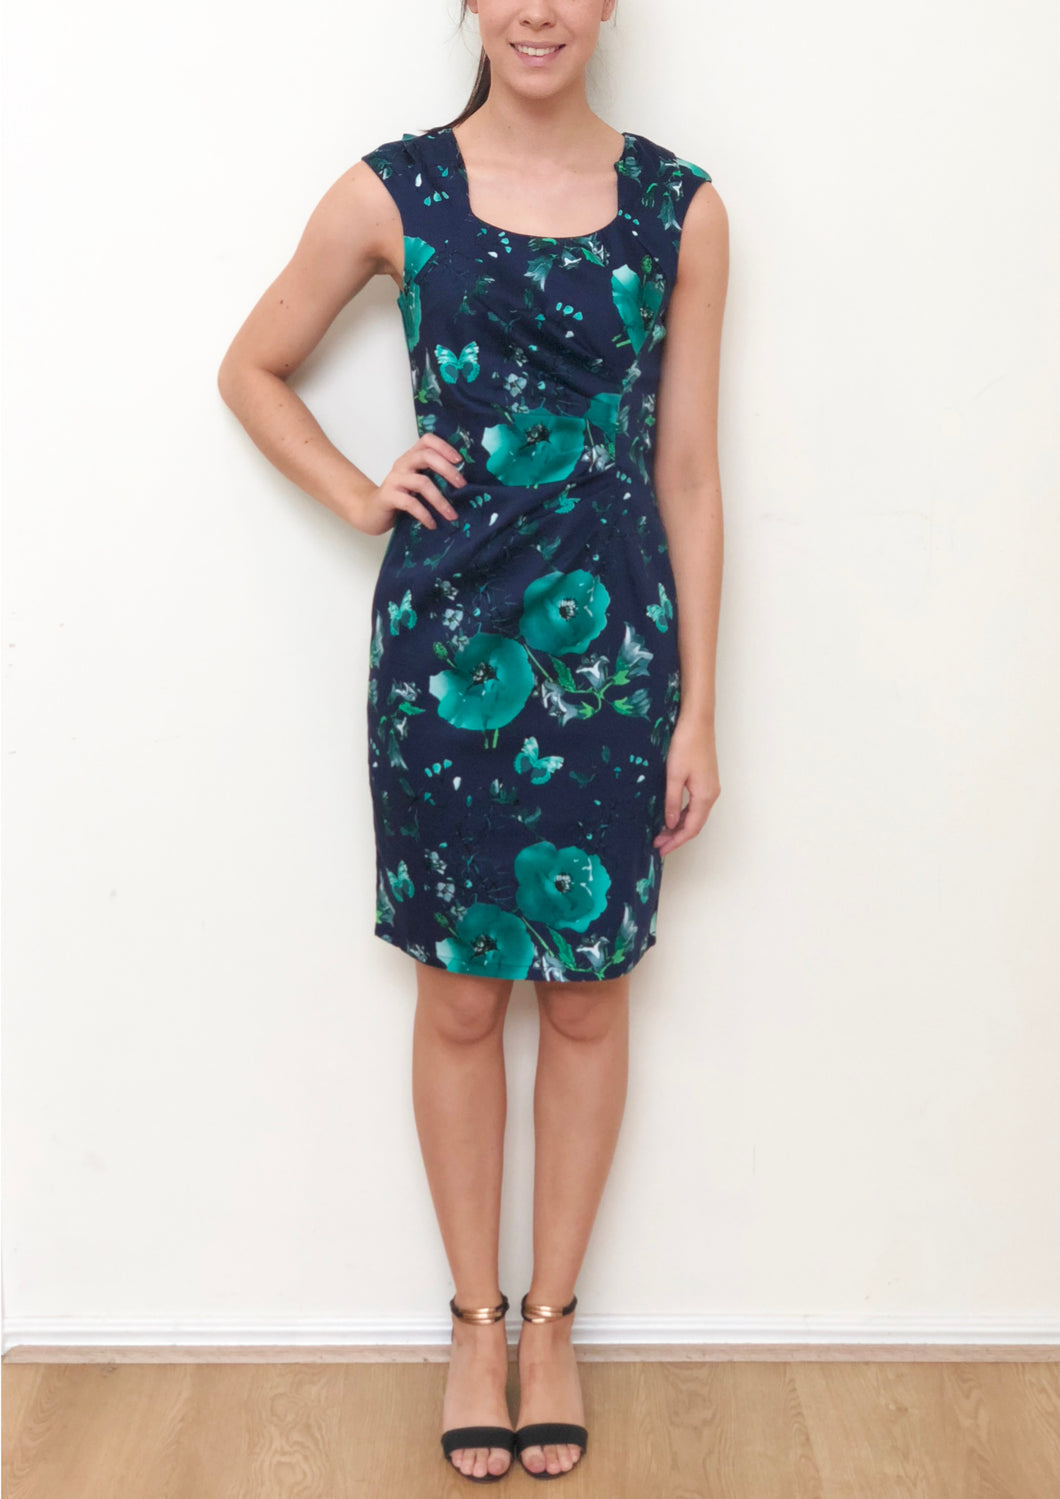 VS0015-31TB Dark Navy Teal Floral Dress (Pack) New Arrival